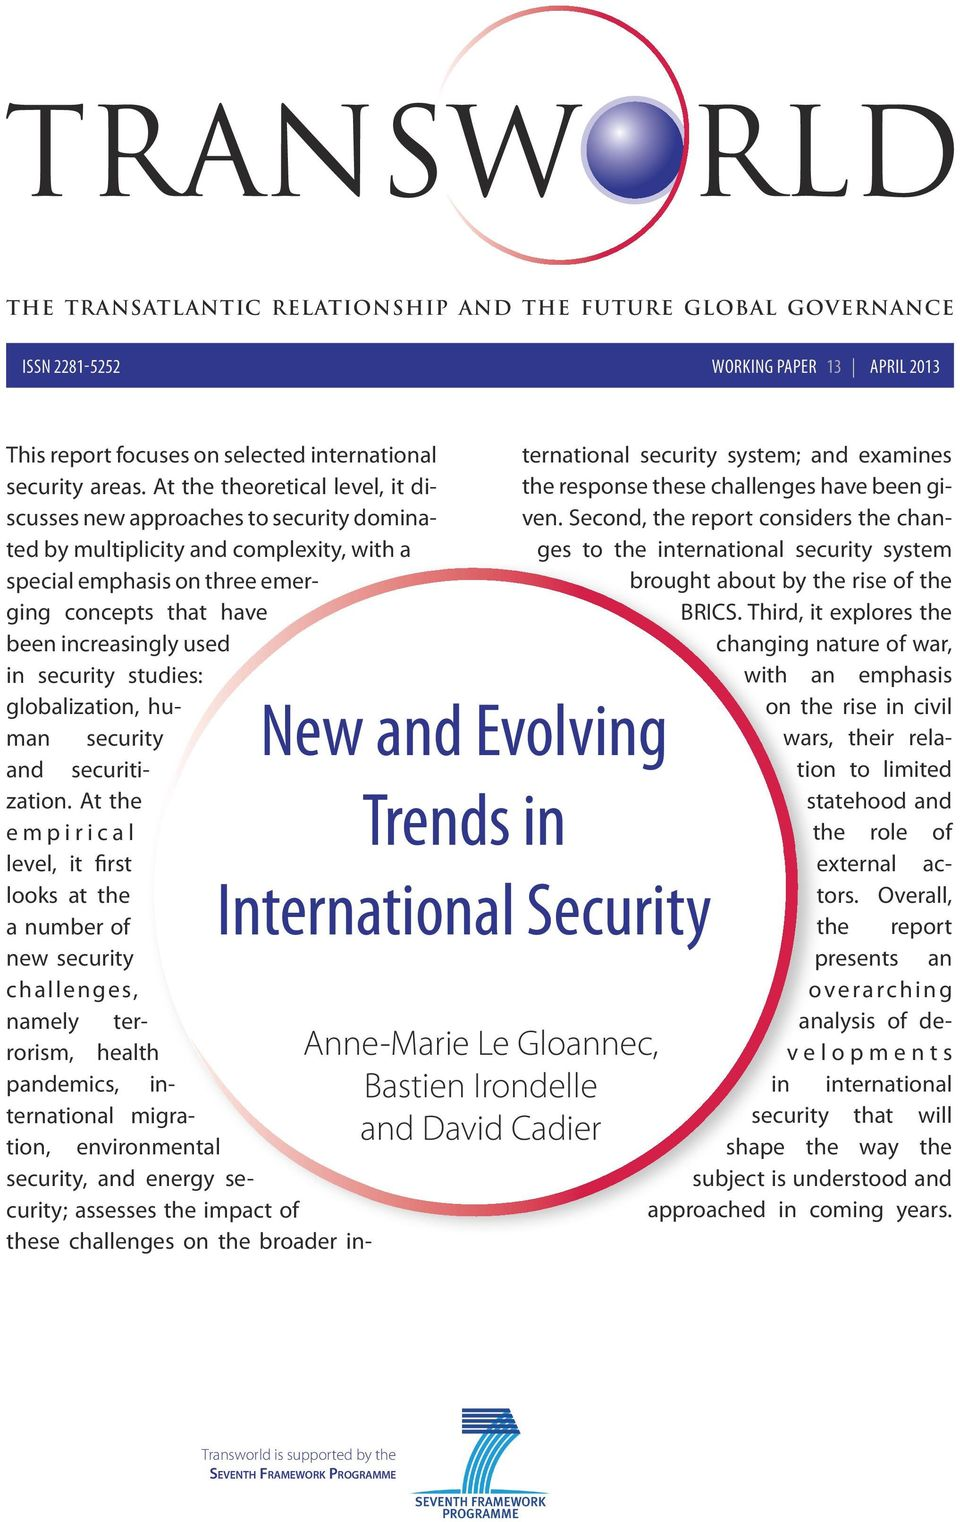 security studies: globalization, human security and securitization.